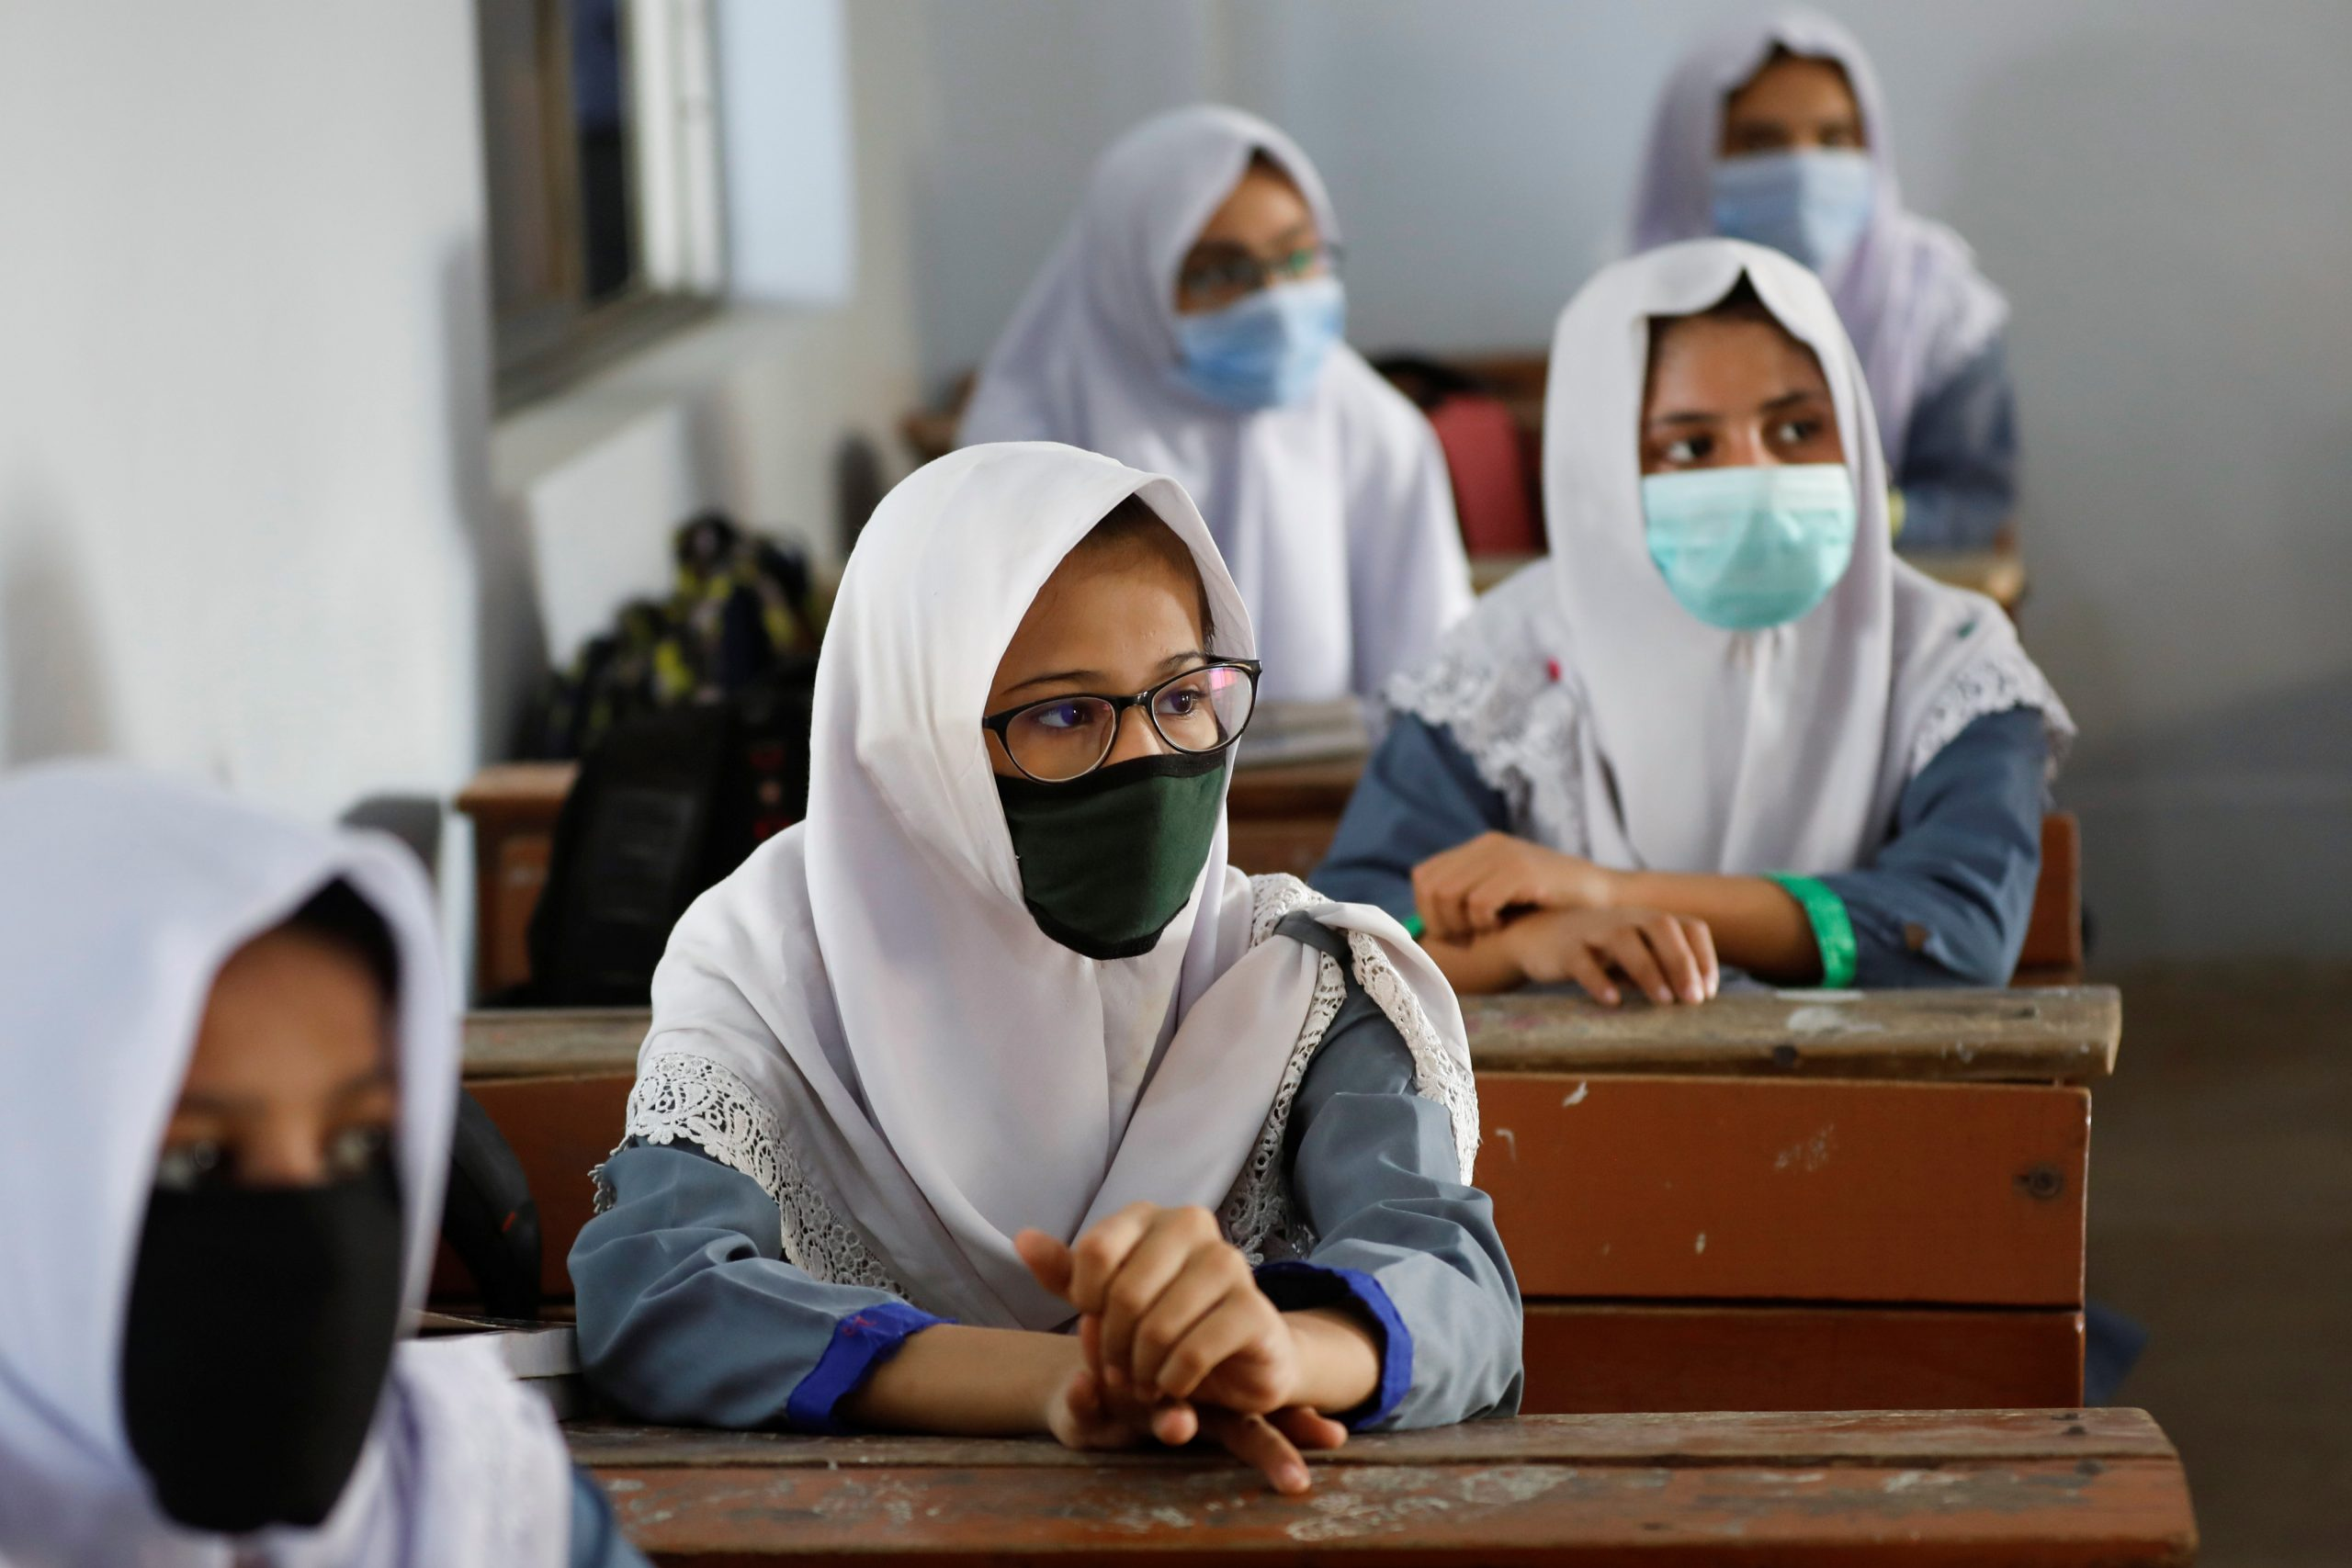 Students keep safe distance while attending a class as schools reopen amid the coronavirus disease (COVID-19) pandemic, in Karachi, Pakistan September 15, 2020. REUTERS/Akhtar Soomro